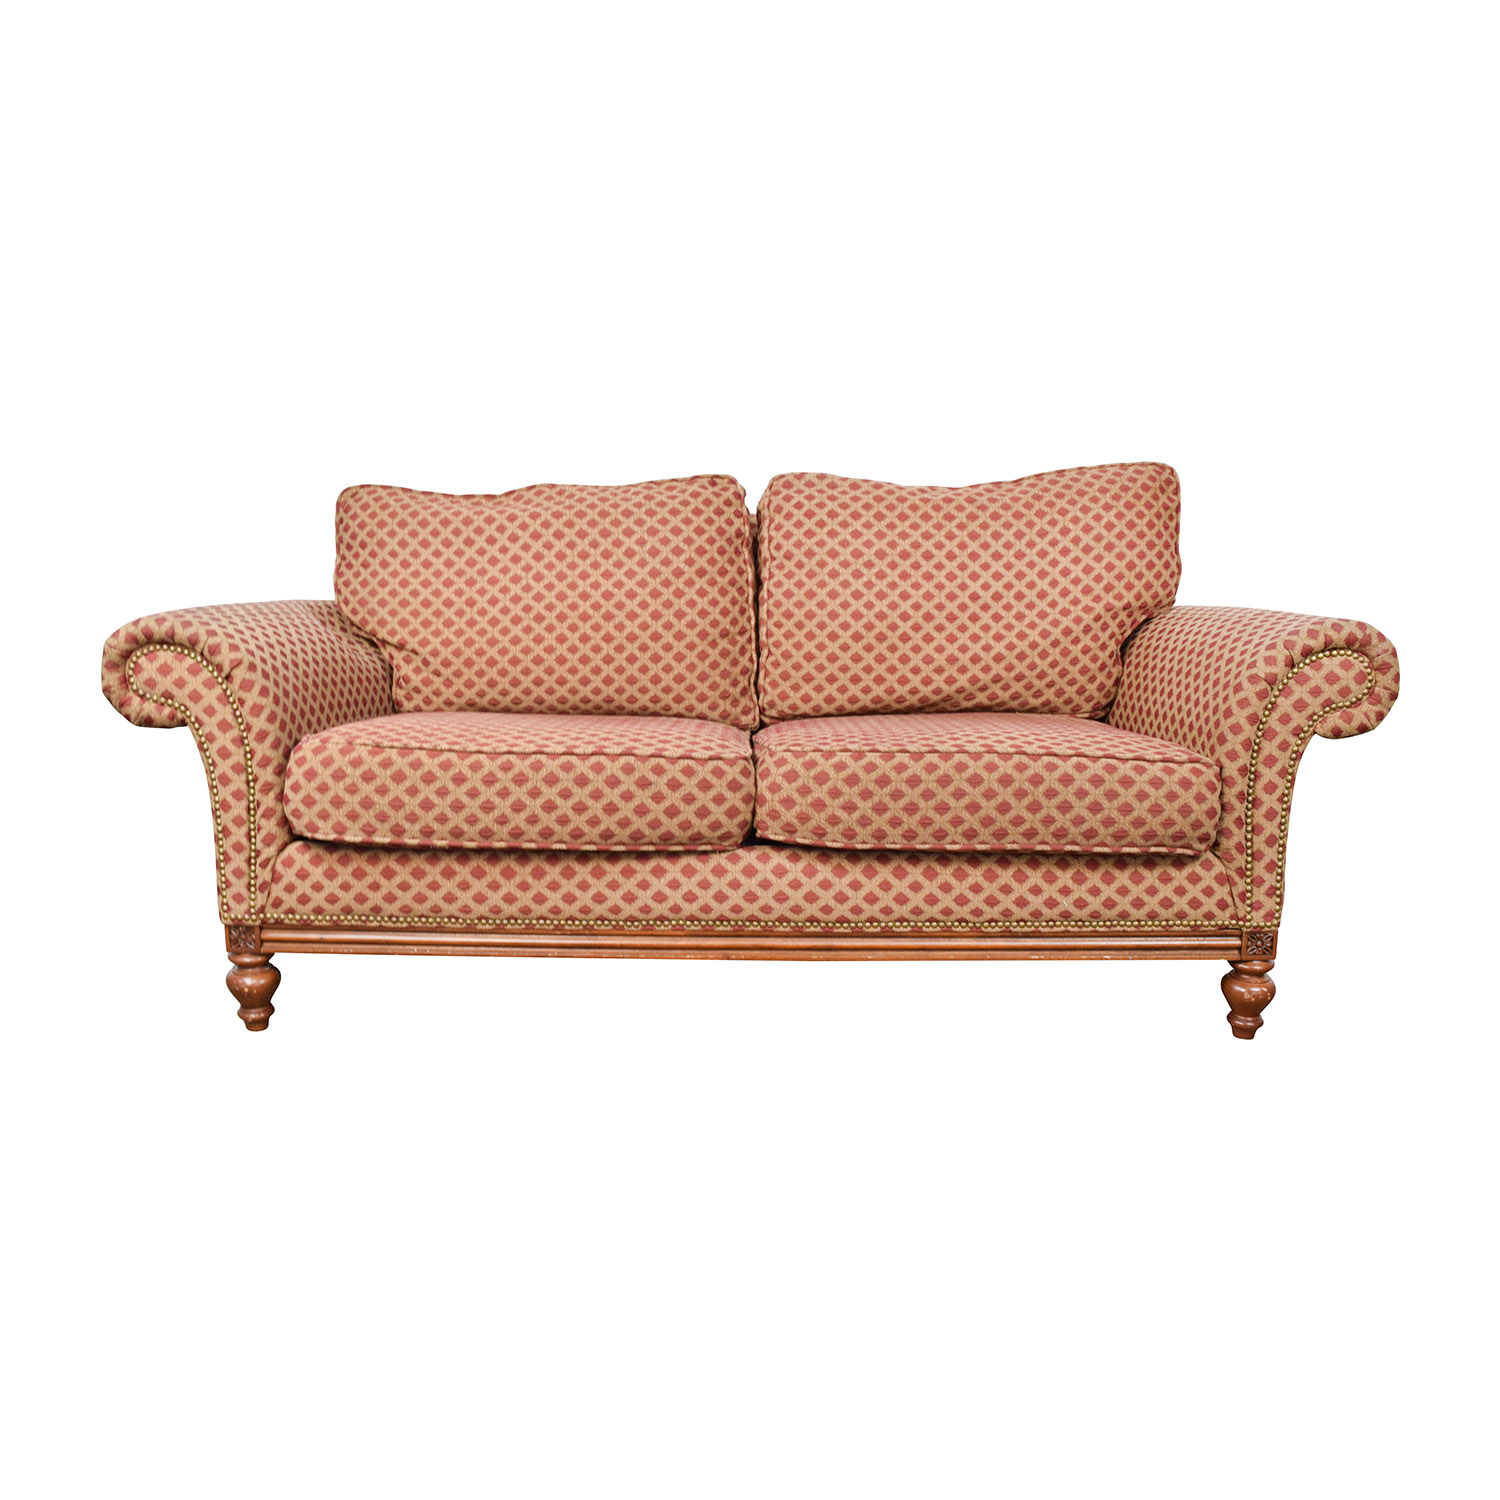 Bernhardt Bernhardt Red and Gold Love Seat on sale